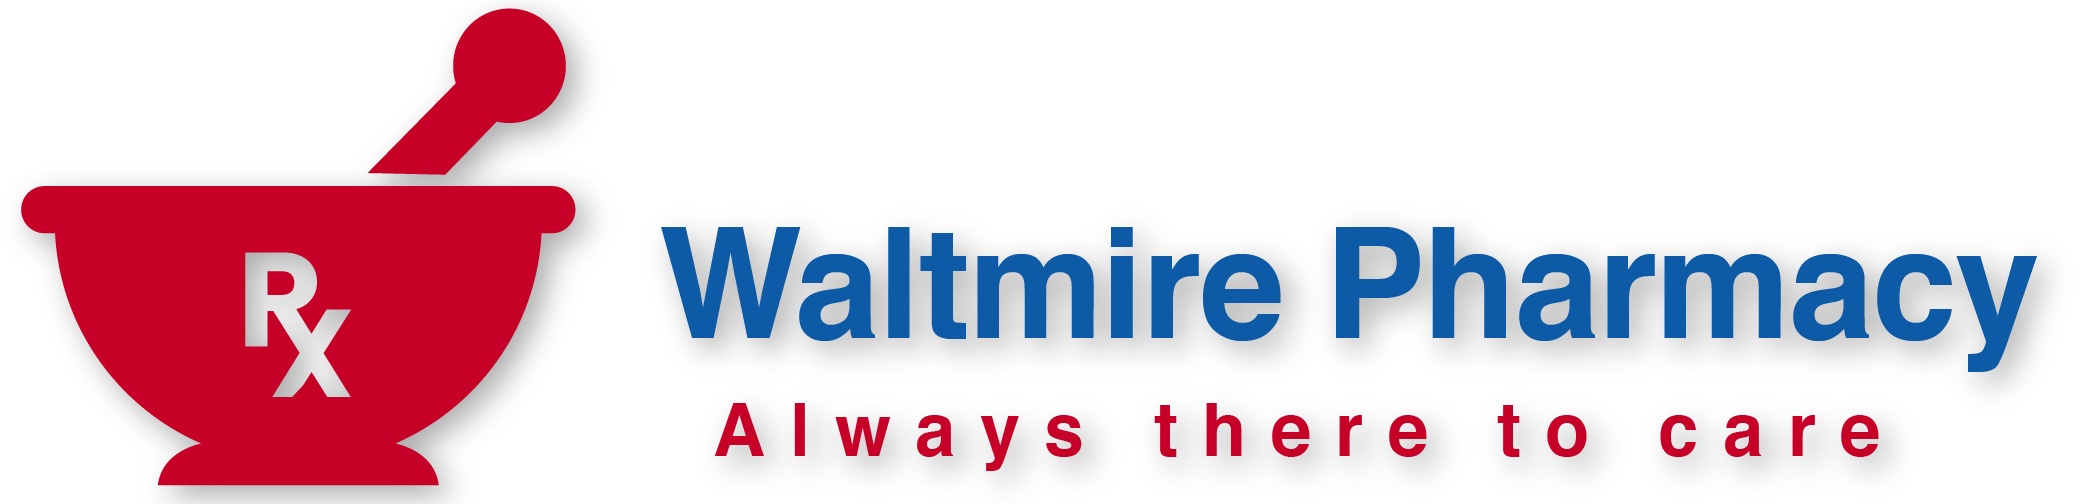 Waltmire Pharmacy